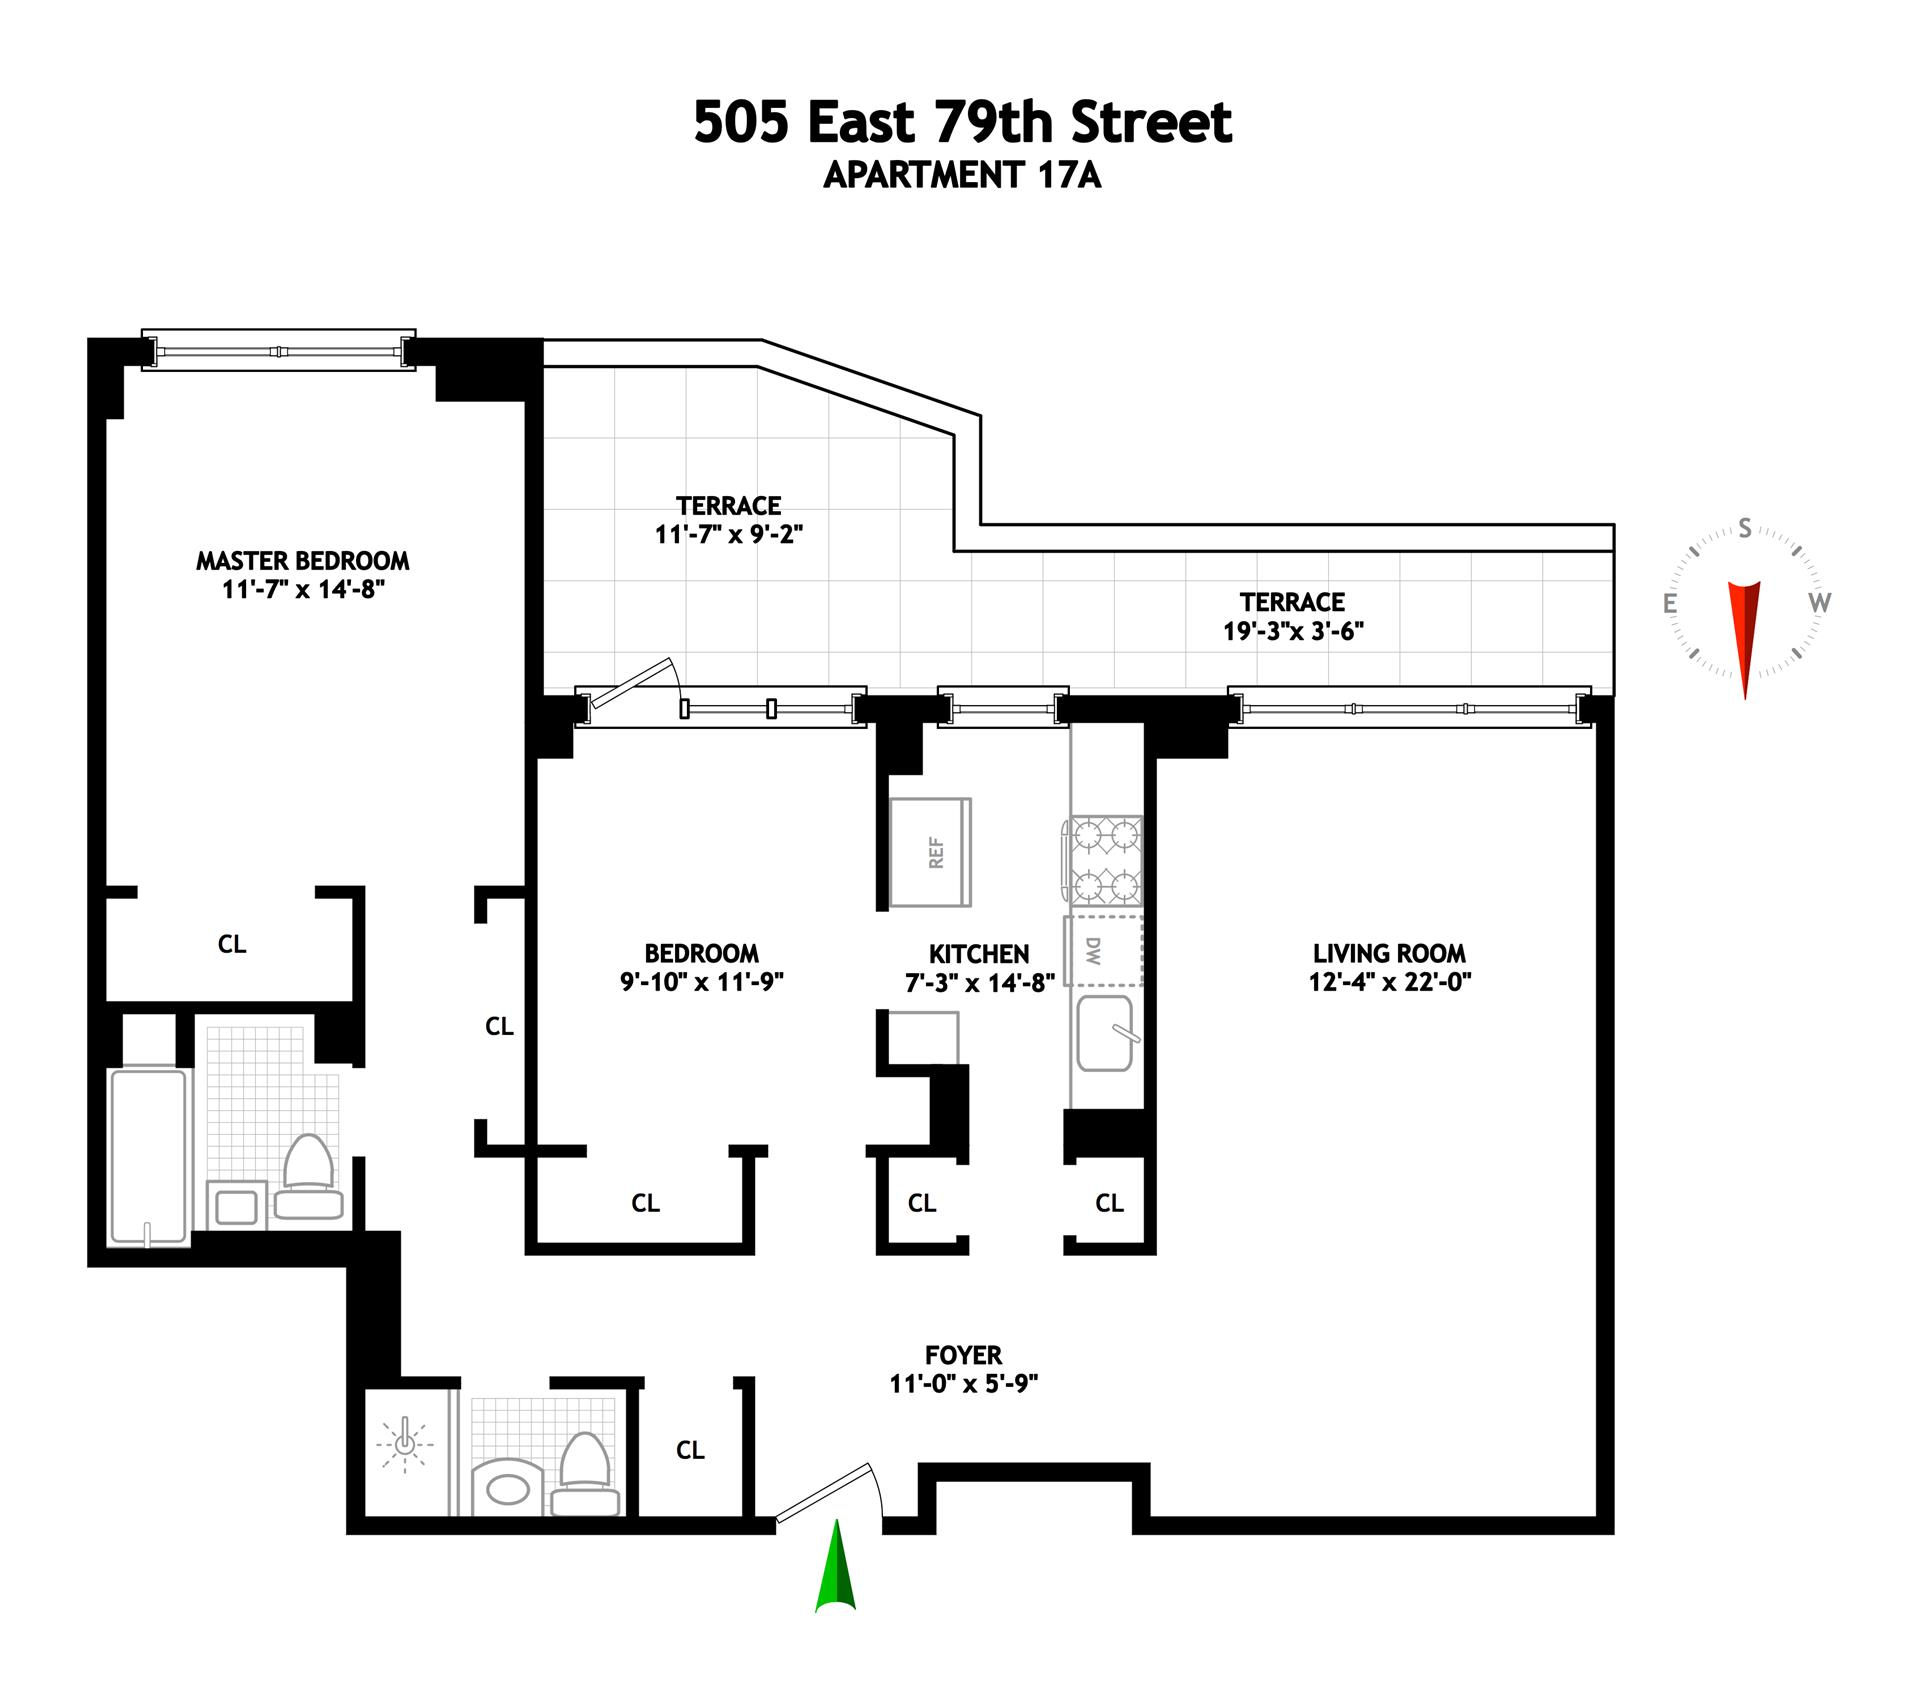 Floor plan of EAST RIVER HOUSE, 505 East 79th St, 17A - Upper East Side, New York